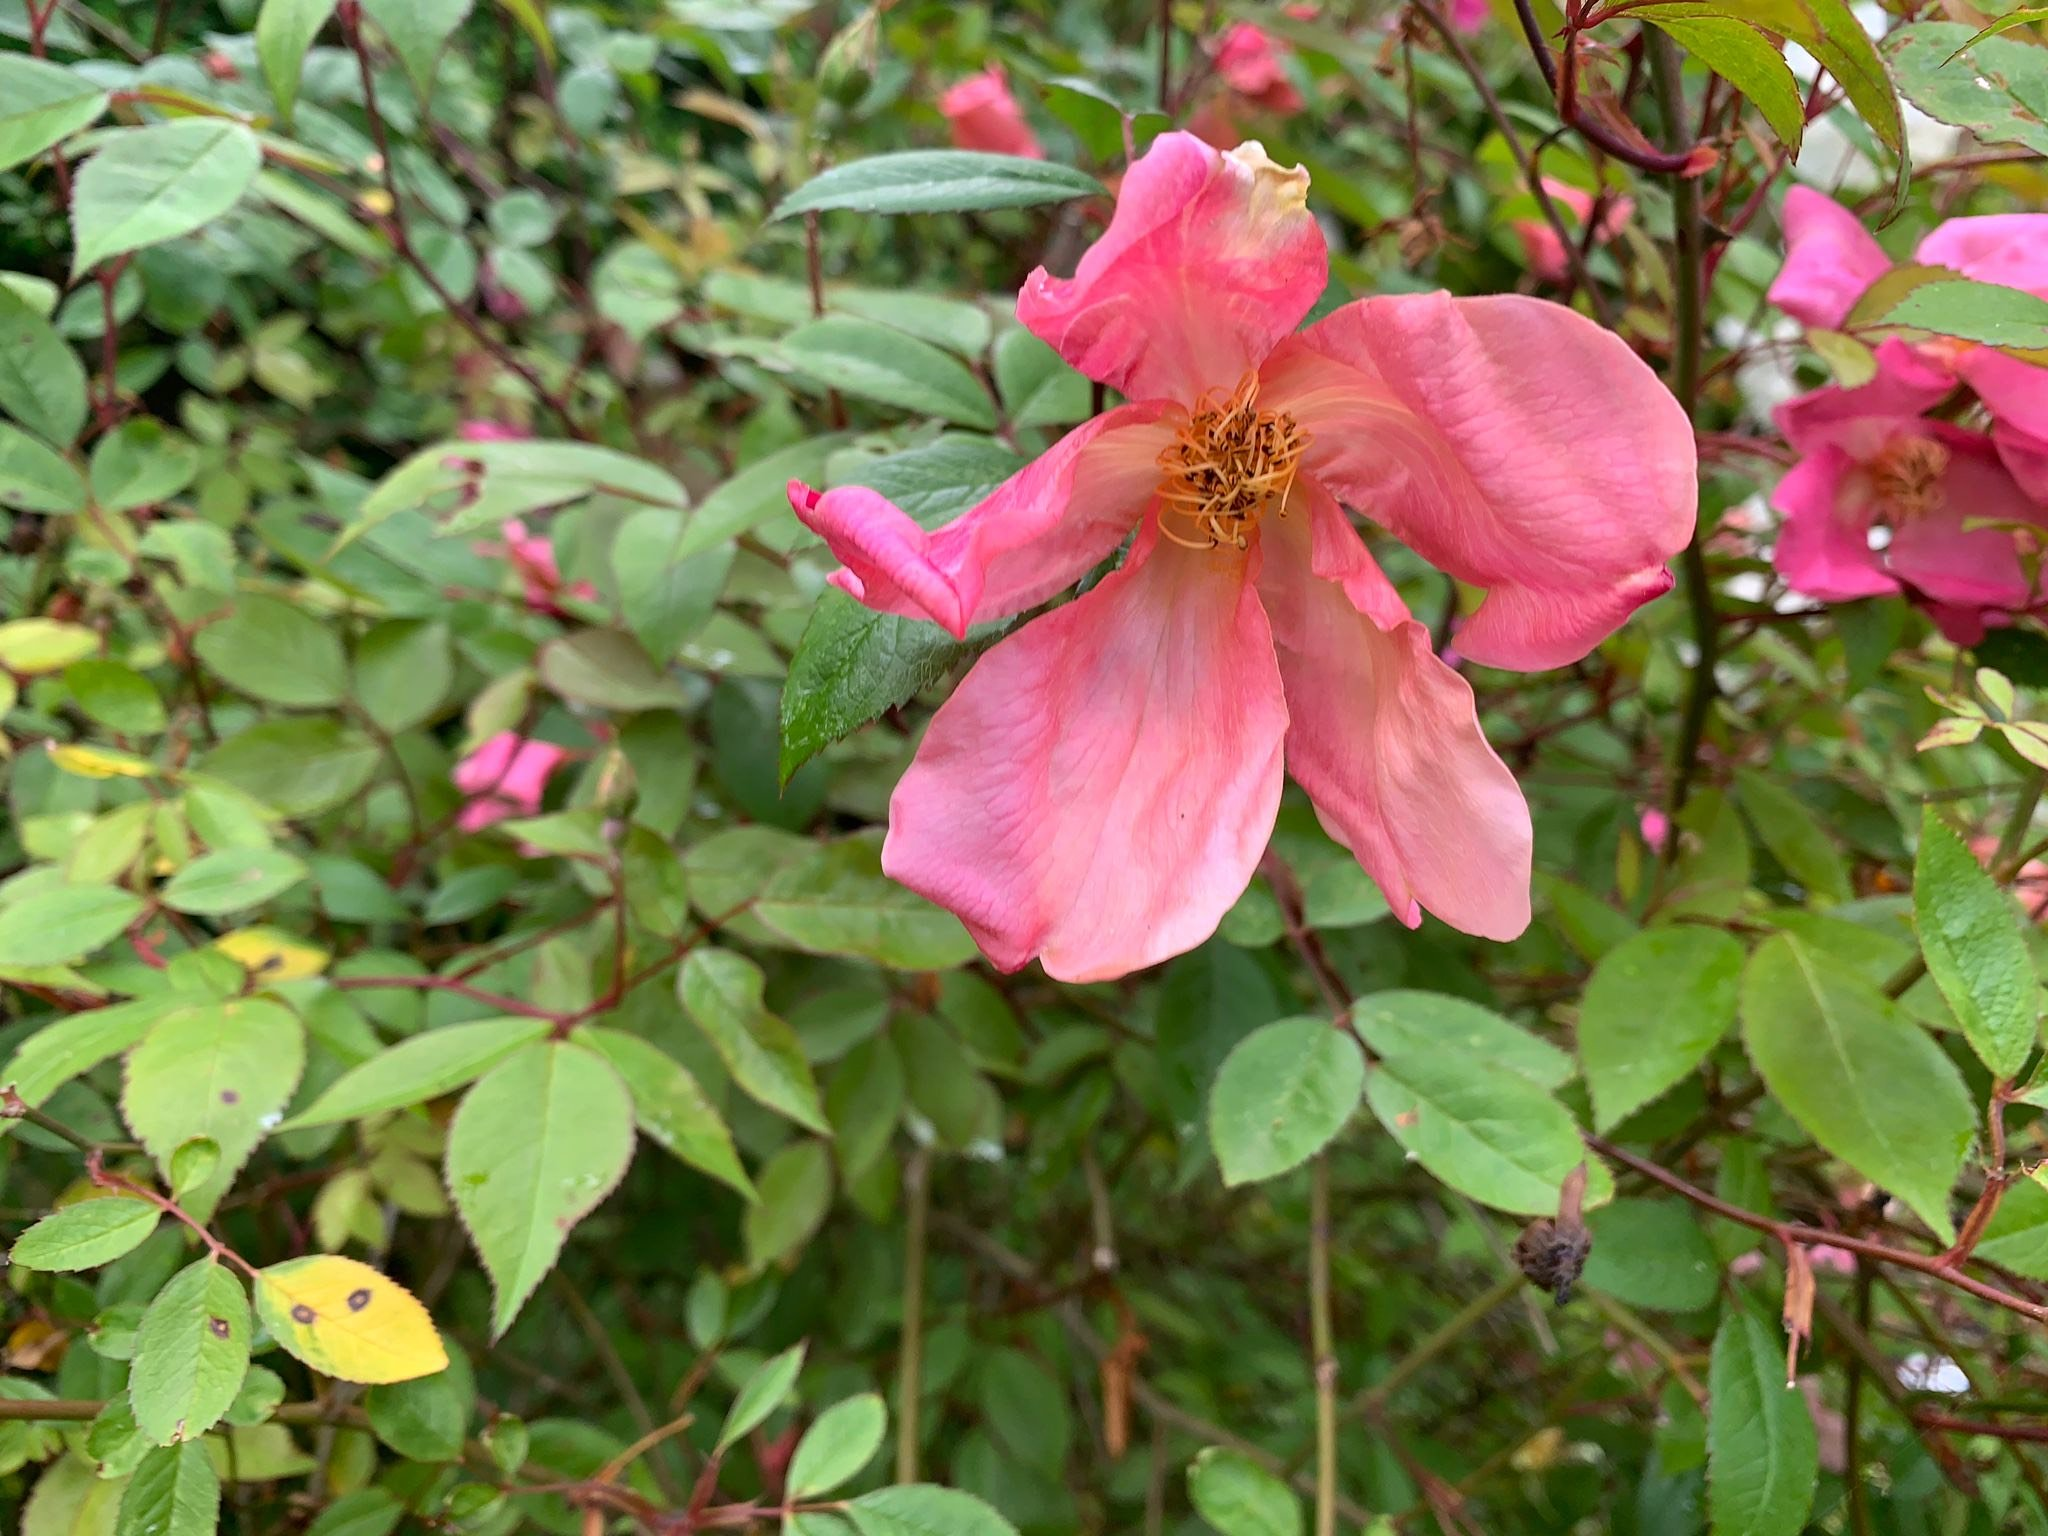 Unknown species rose in John's garden which he says is similar to Glauca but different foliage.